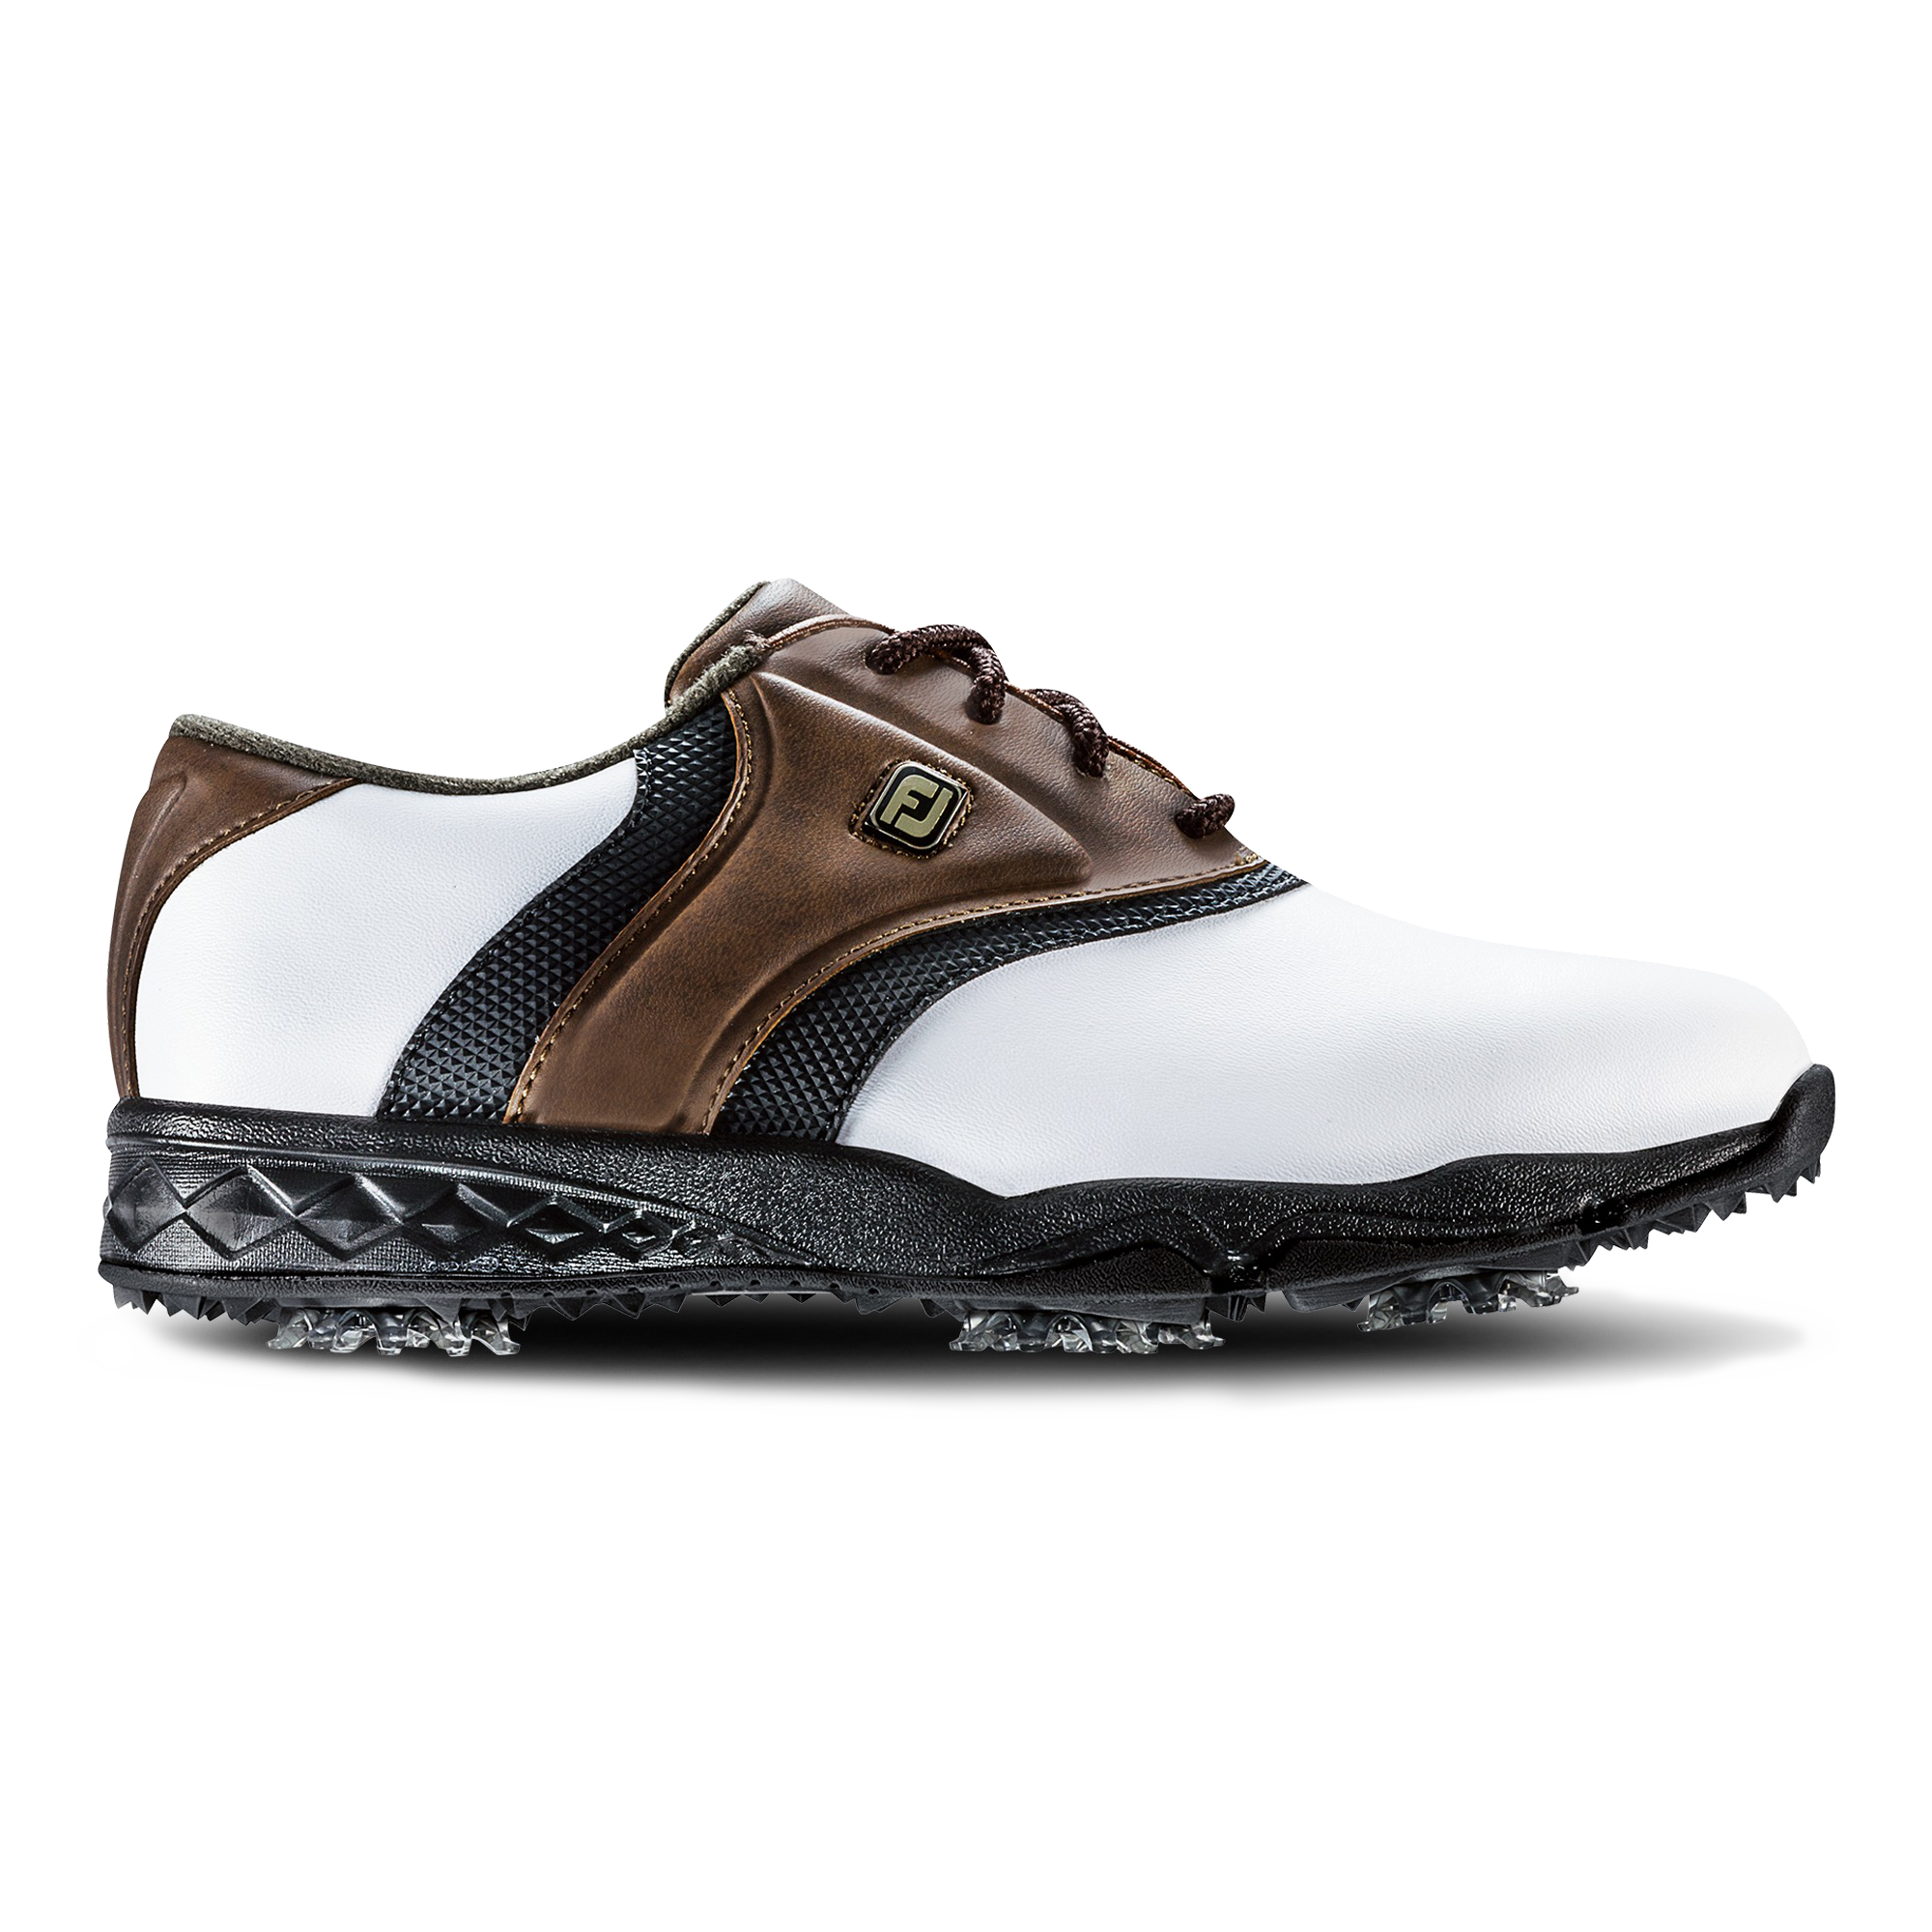 youth golf shoes size 1